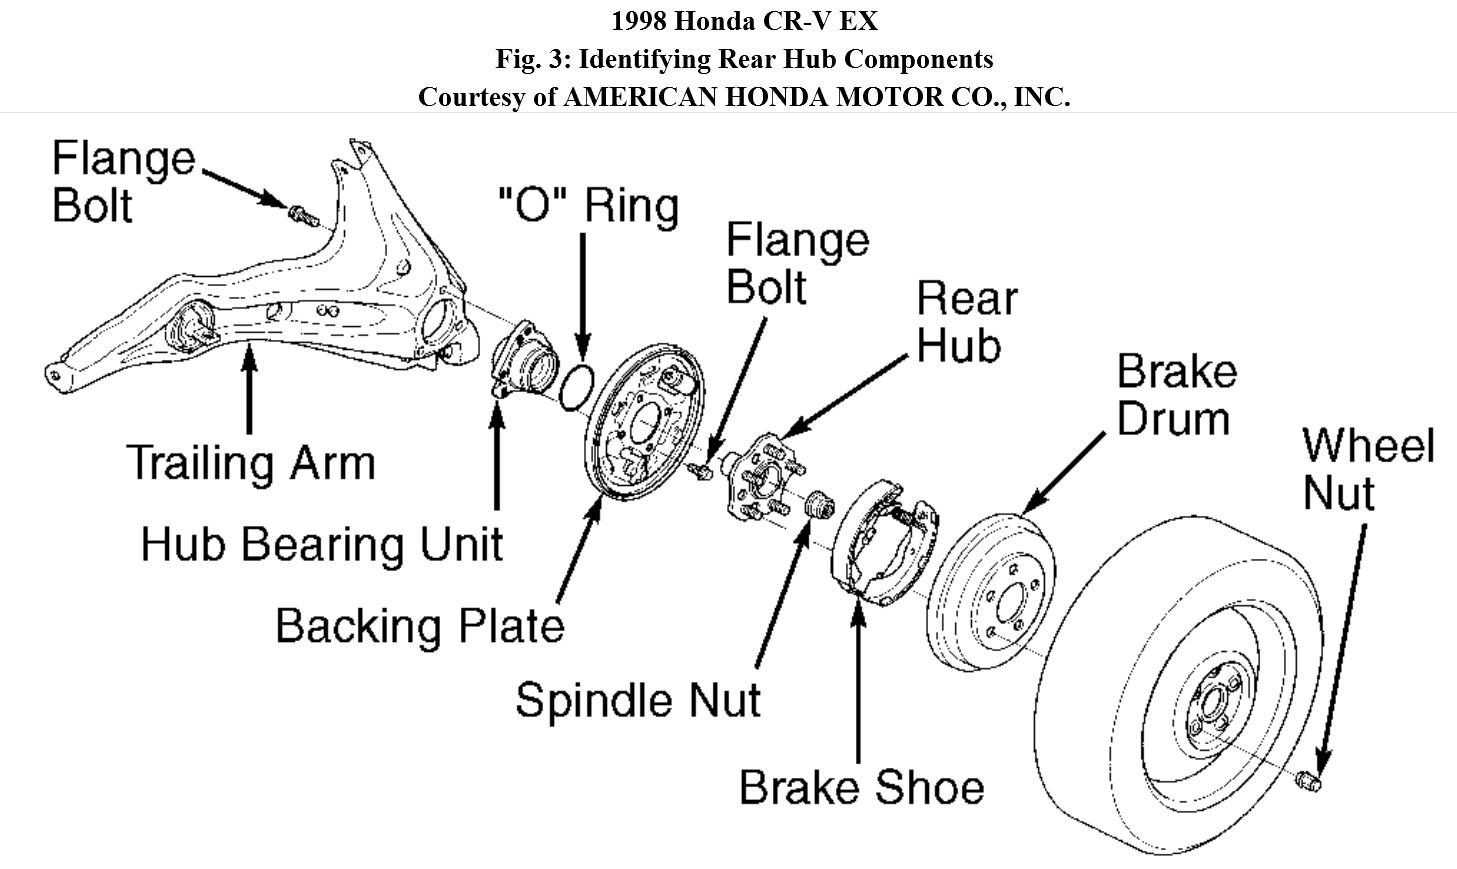 Iacv Civic Wiring Diagram as well Whats Under The Hood Letting The Outside In also 3gkc6 Acura Tl 2 5 Won T Start Be ing Recurring Problem further Honda Civic Del Sol Fuse Box Diagrams 374429 further 1997 Honda Crv Fuse Box Diagram. on 1997 honda civic ex fuse box diagram